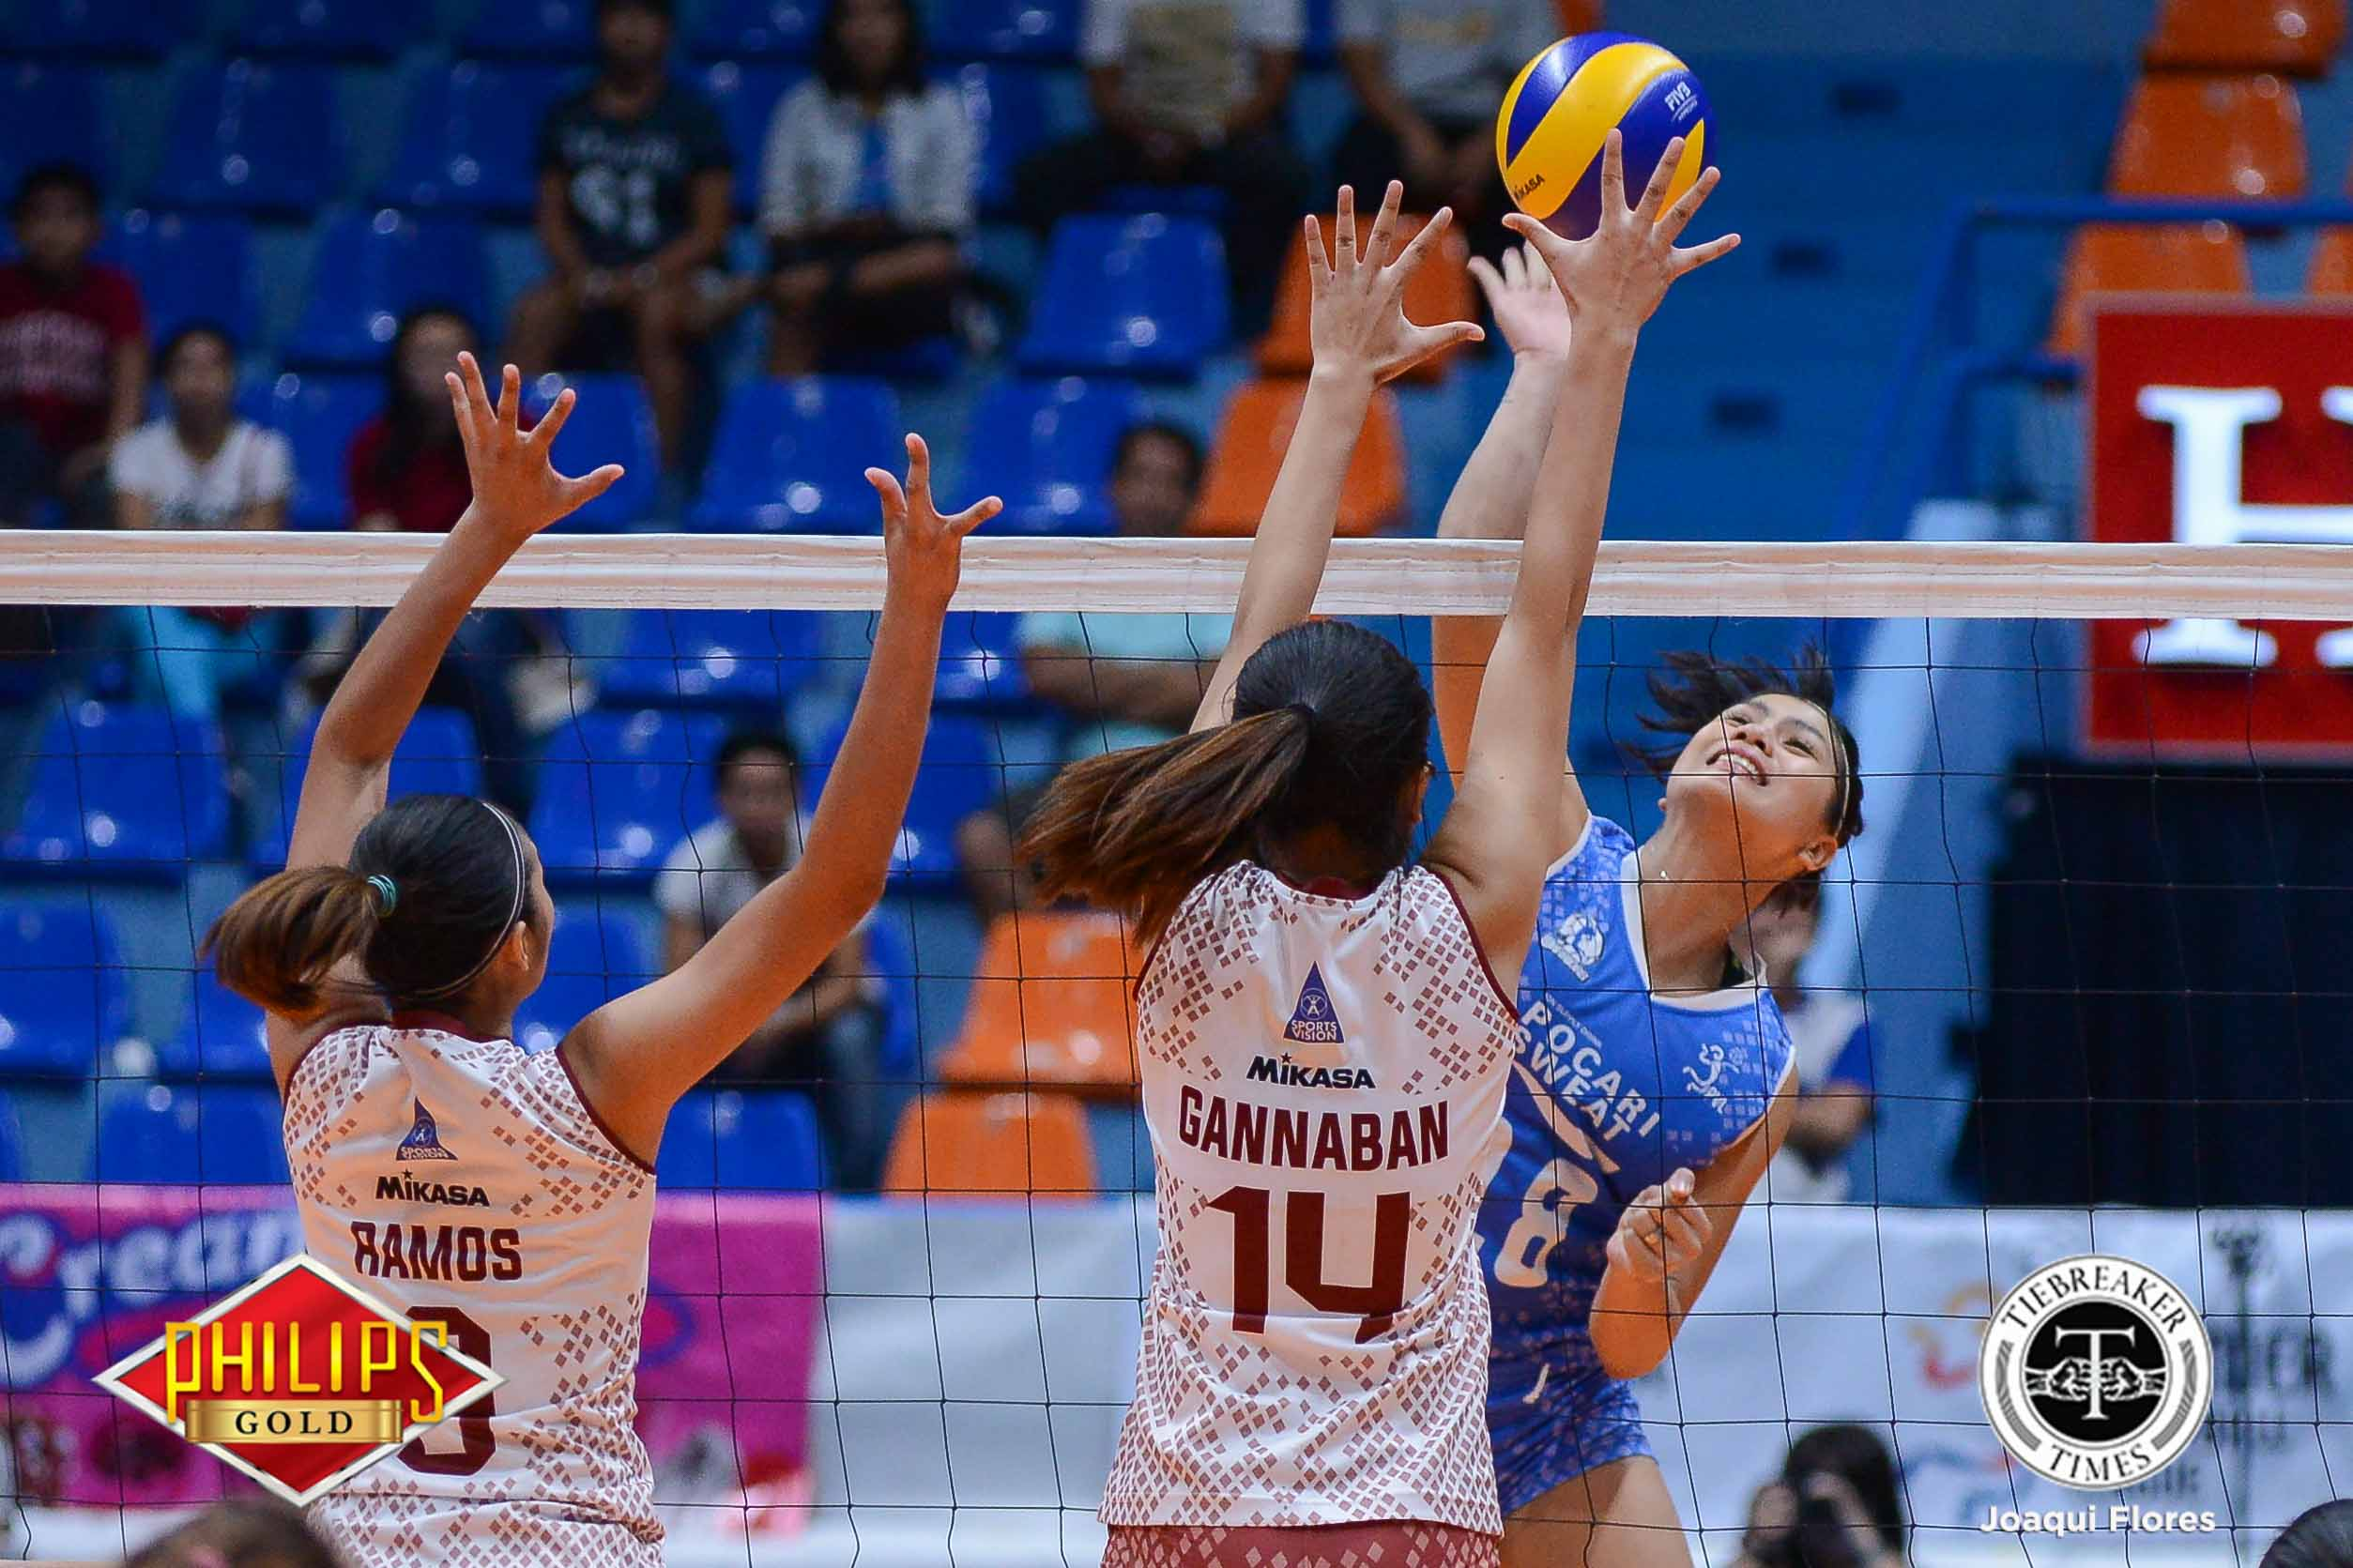 PVL-Women-Pocari-vs.-UP-Pablo-3258 'Investment' in PVL pays off for Myla Pablo, Grethcel Soltones News PVL Volleyball  - philippine sports news